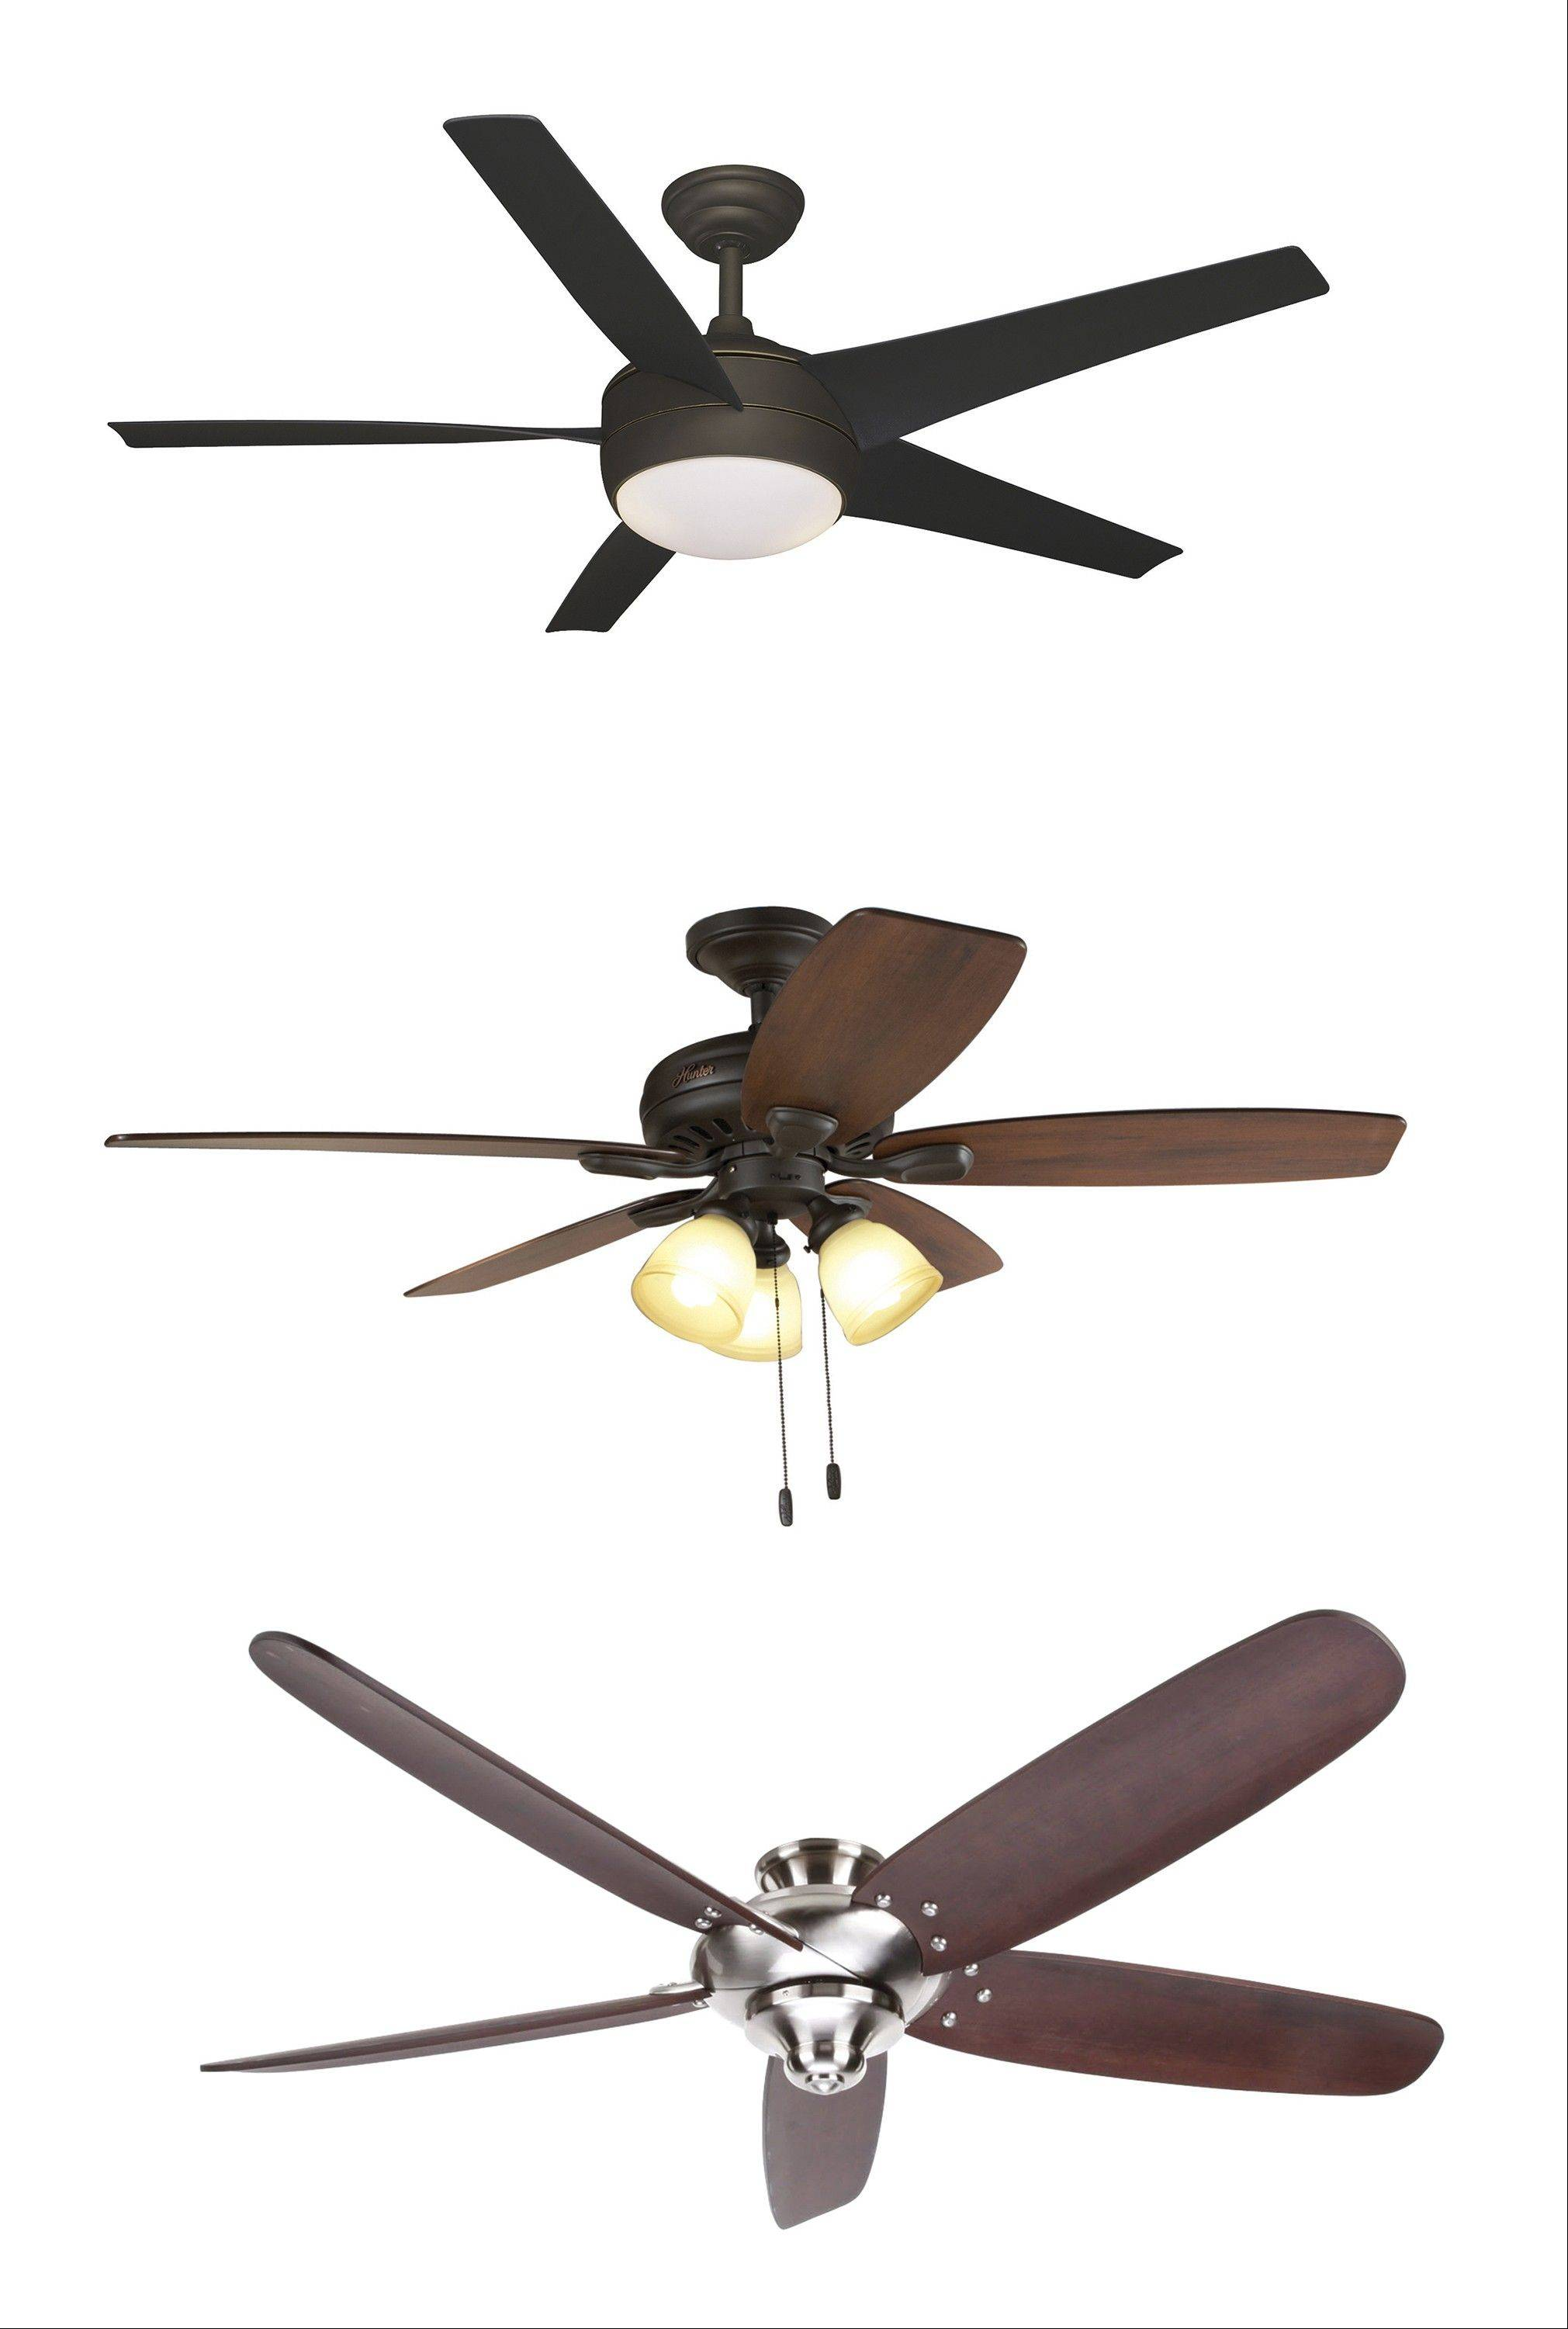 Ceiling fans can be design-conscious as well as functional. Three examples from top to bottom: Hampton Bay's 52-inch Windward IV fan in oil-rubbed bronze; 52-inch Highbury bronze ceiling fan from Hunter; Hampton Bay's 68-inch brushed nickel Altura.